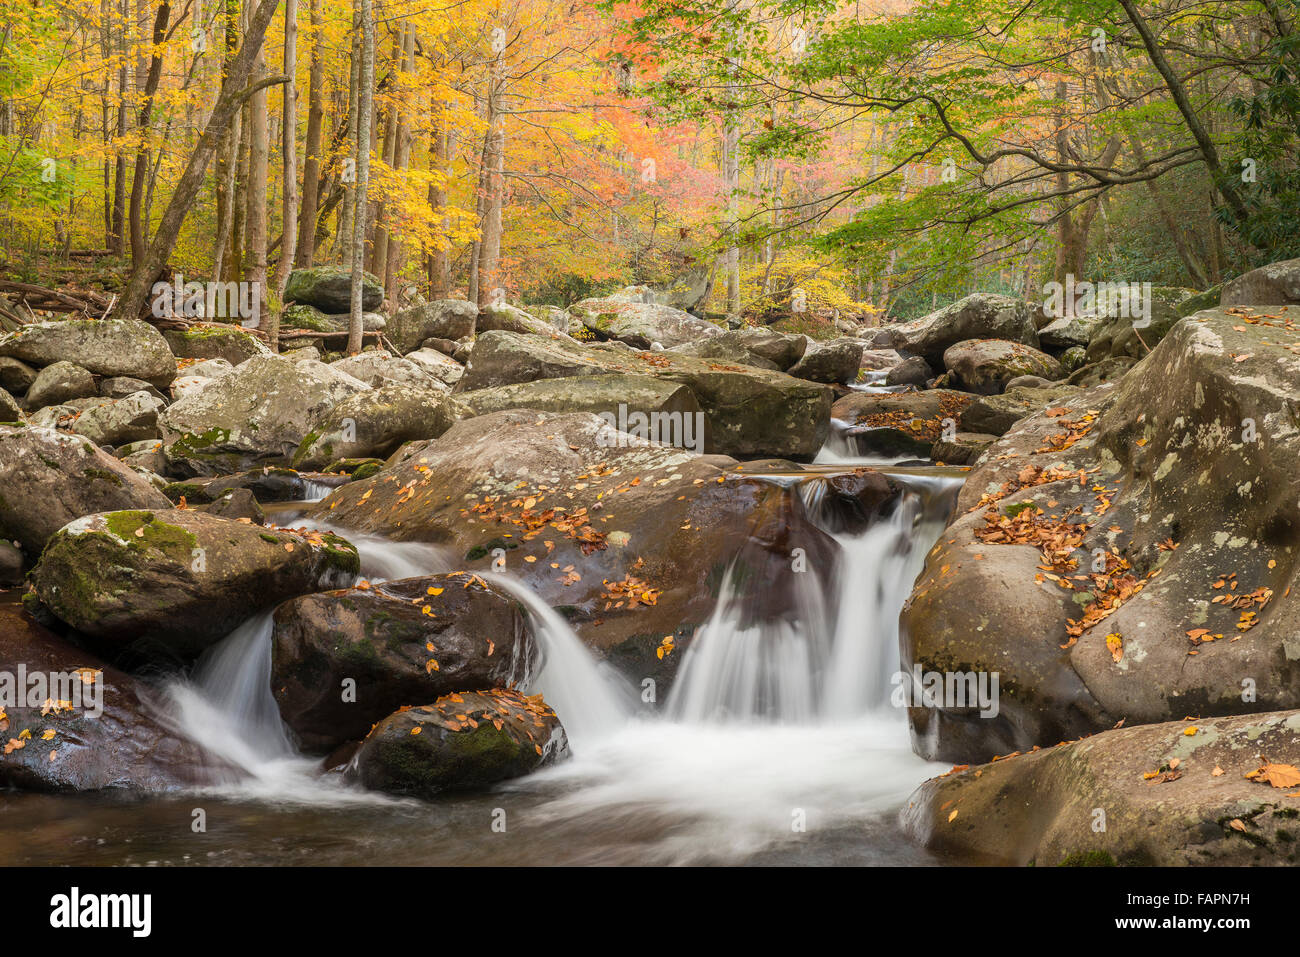 Autumn view of Middle Prong Little Pigeon River, Great Smoky Mountains NP, Tennessee USA Stock Photo